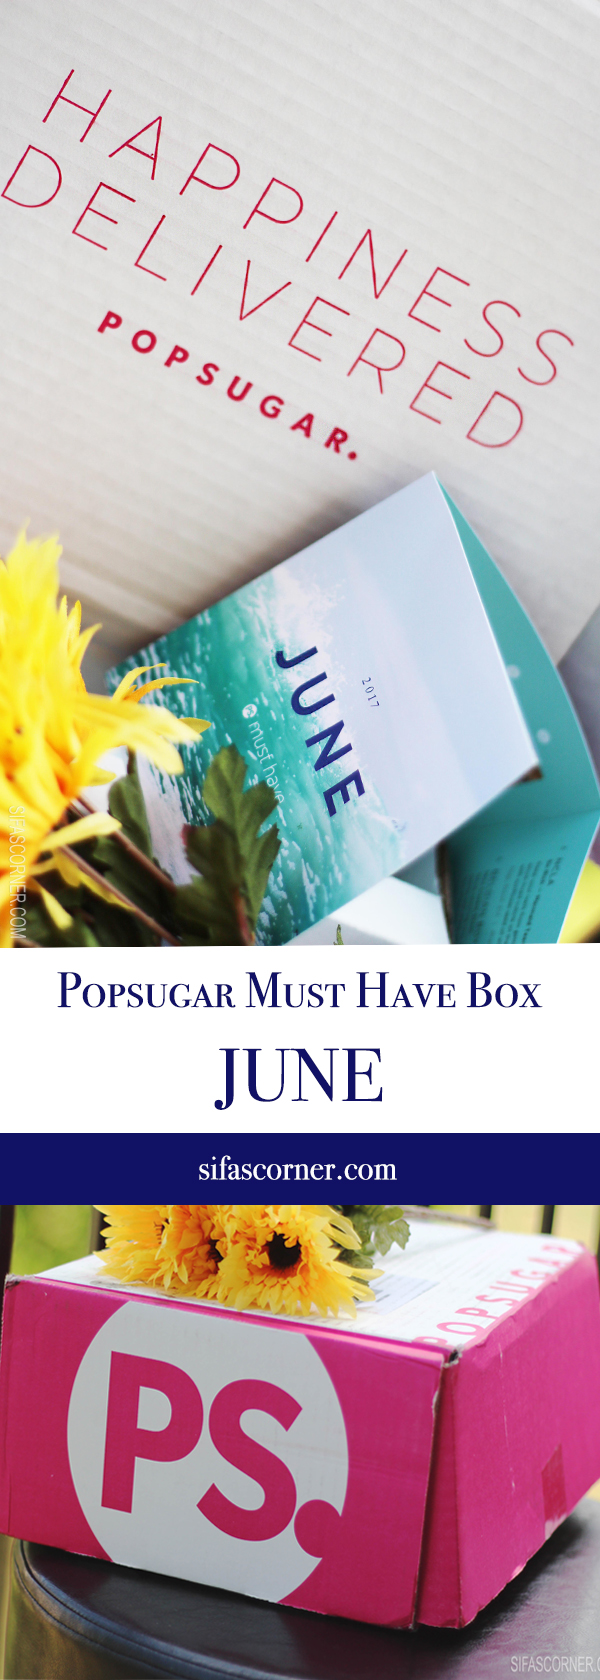 June 2017 POPSUGAR Must Have Box